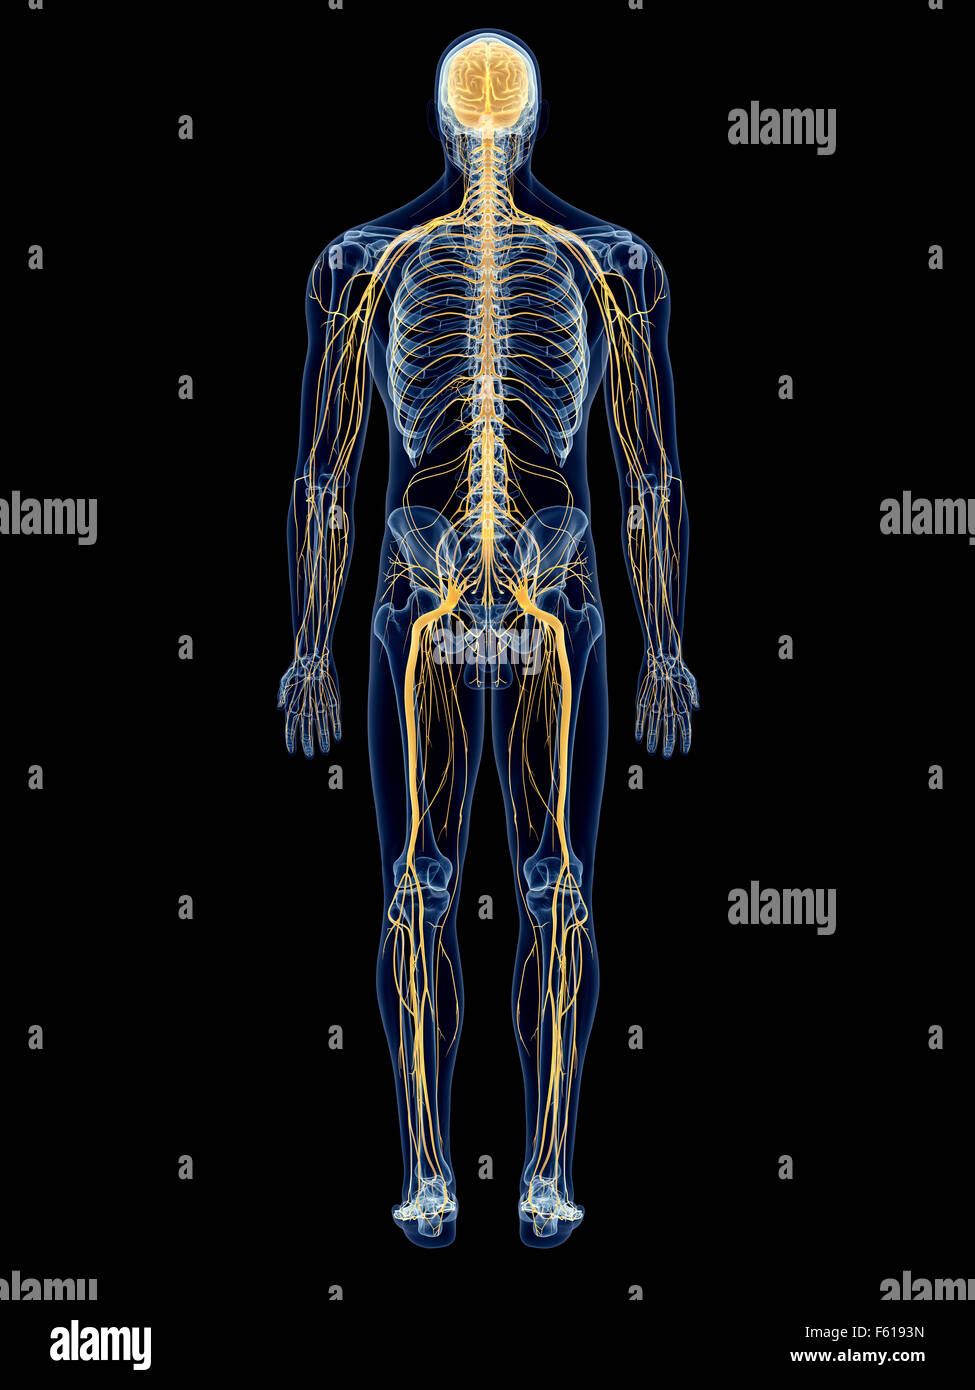 Nervous System Stock Photos & Nervous System Stock Images - Alamy